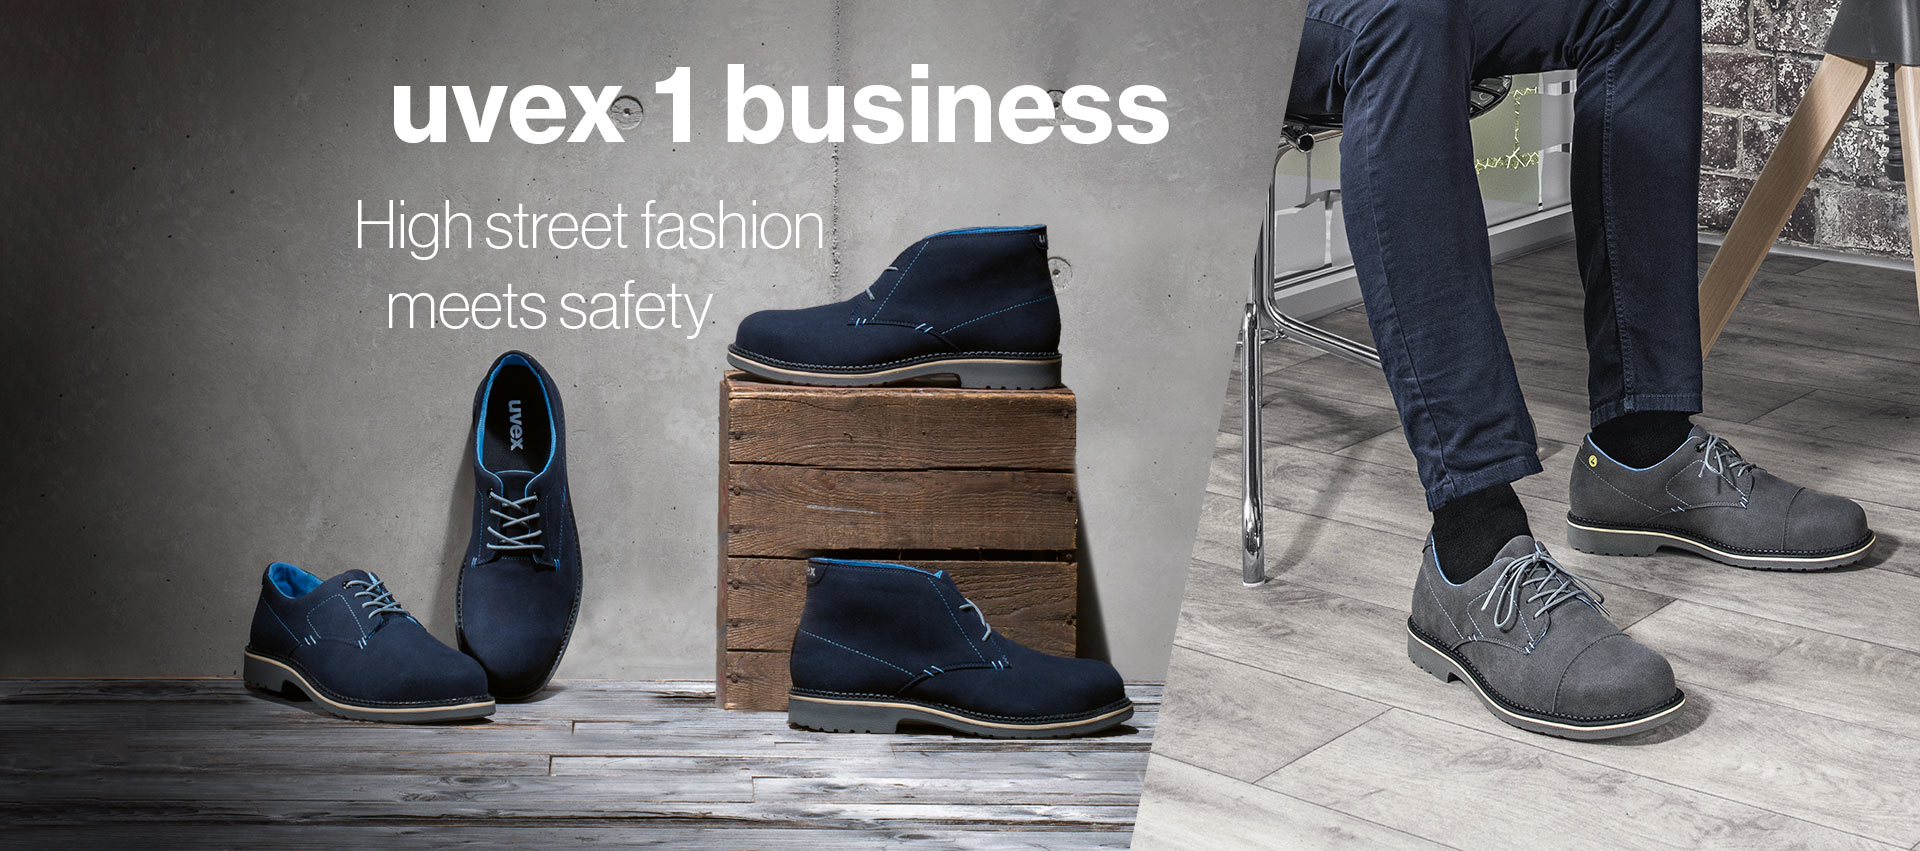 uvex 1 business styles on a concrete background